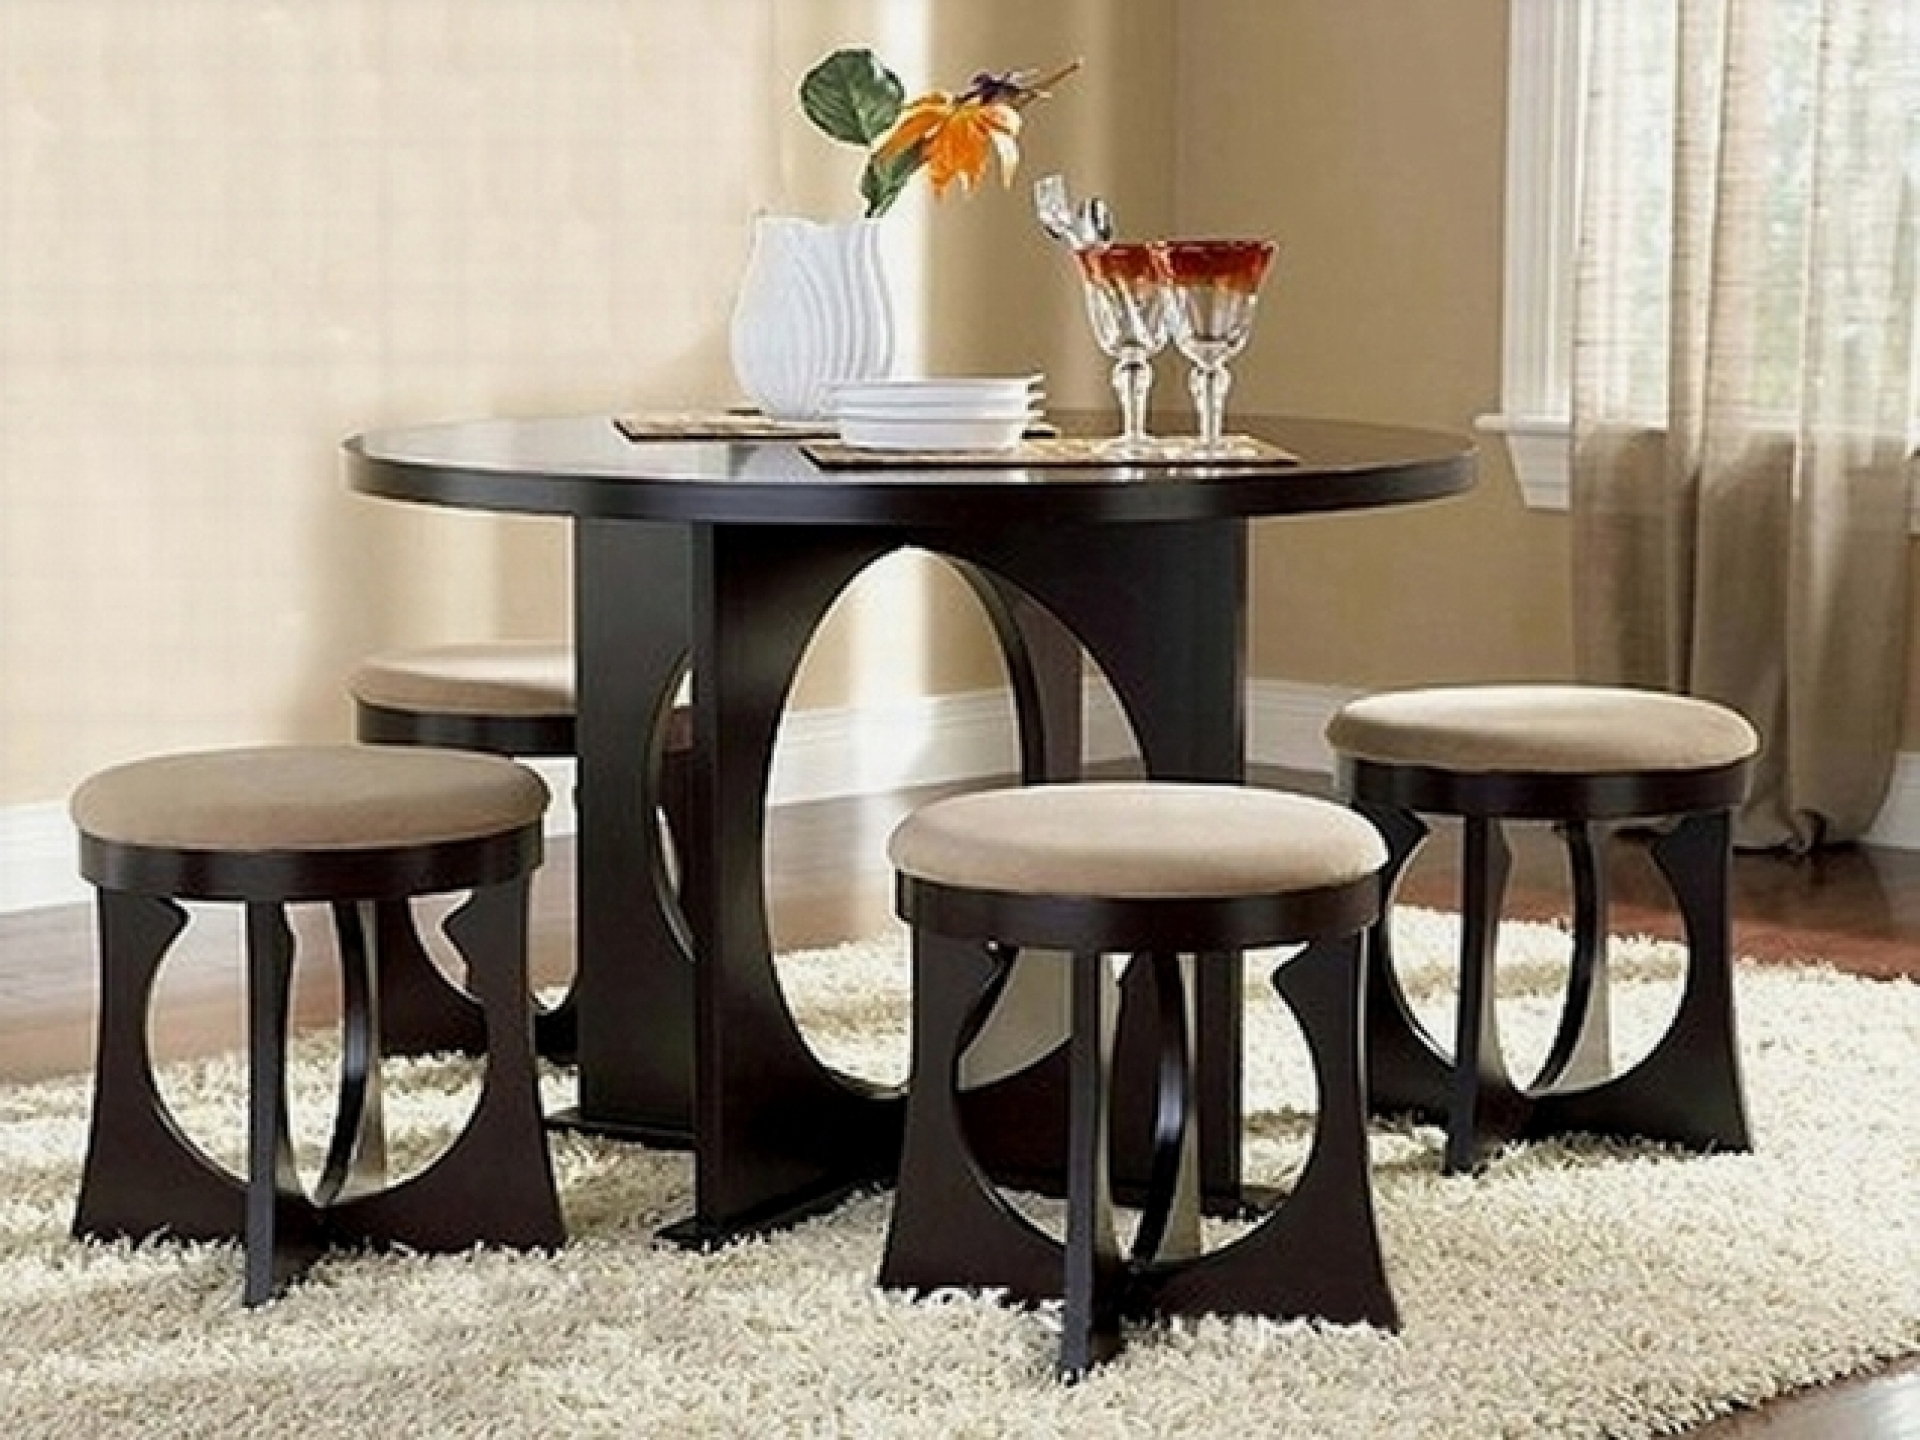 Surprising Round Dining Tables For Small Spaces Fresh